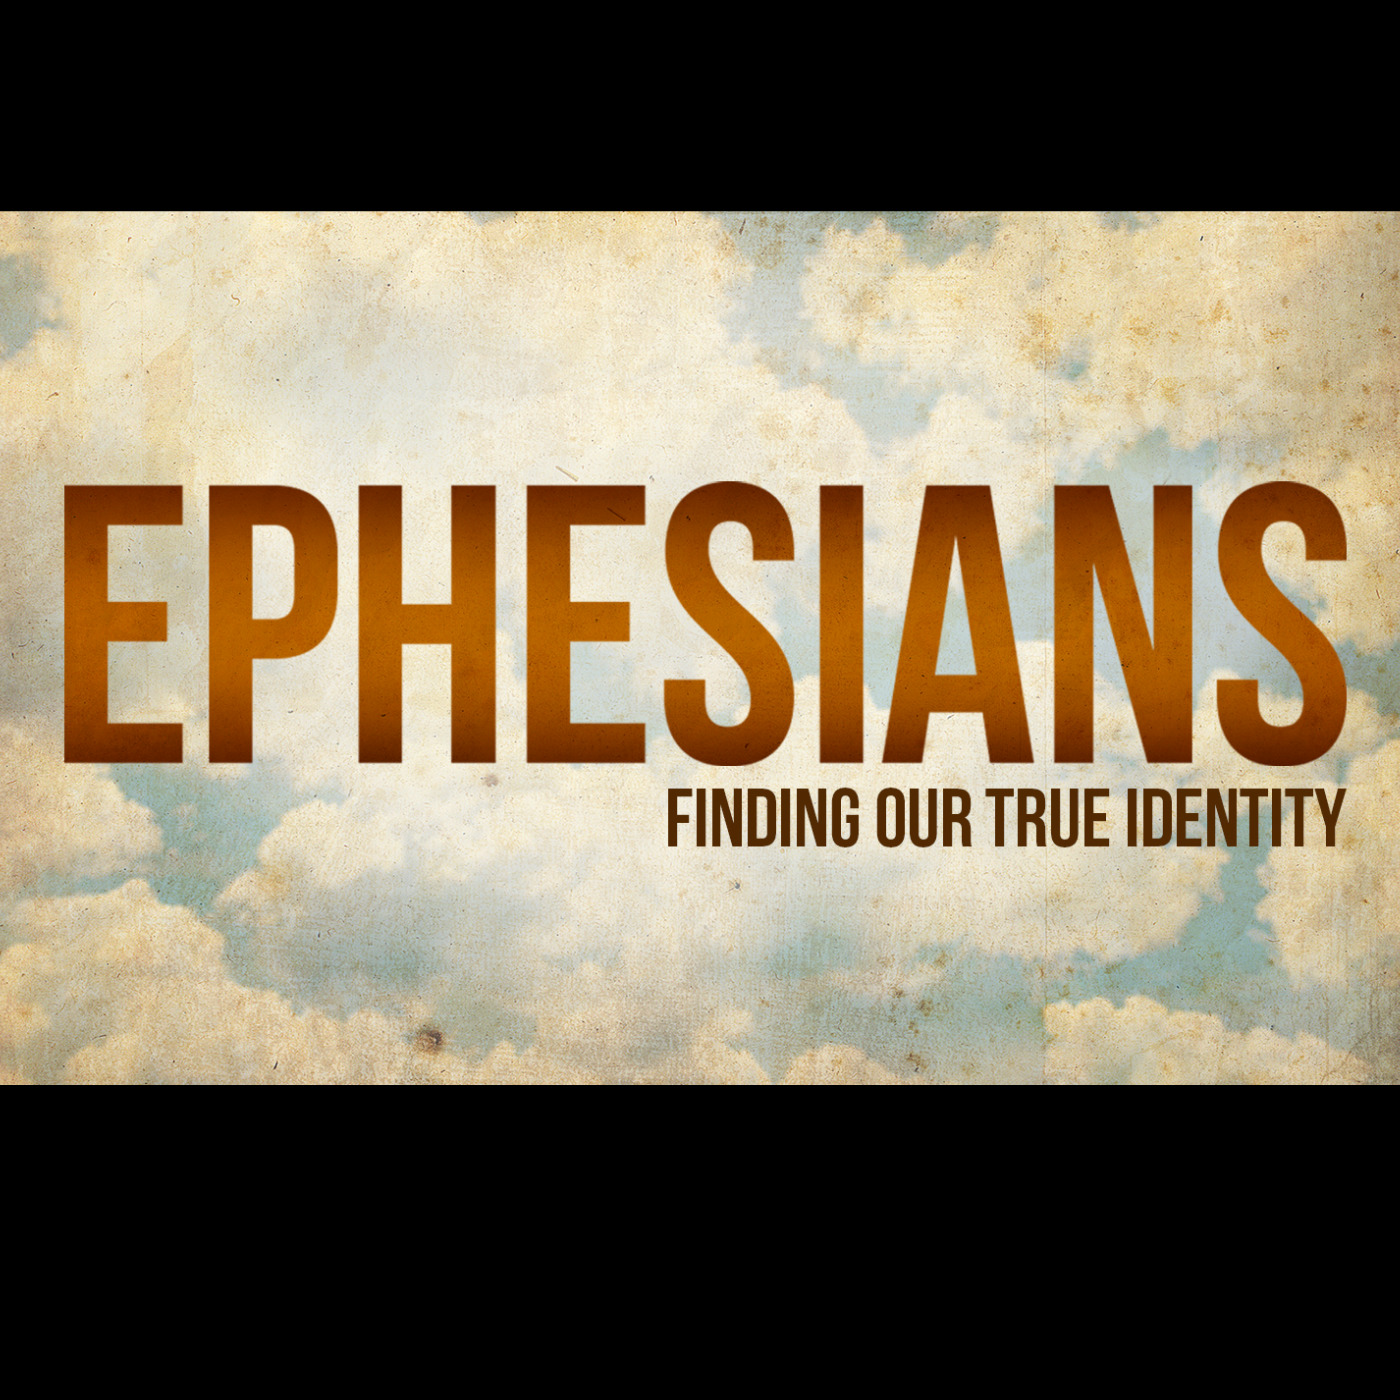 Ephesians - Living Out Our Identity In Christ!